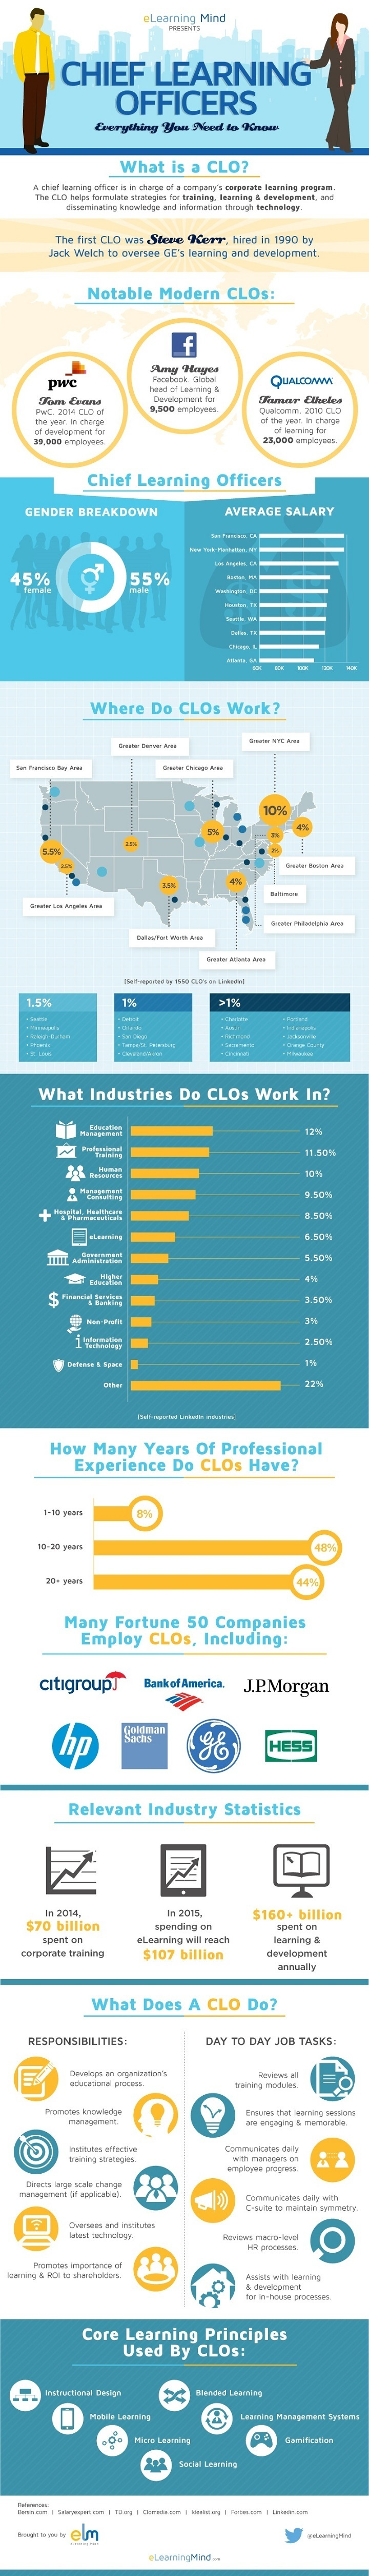 Chief Learning Officers Infographic